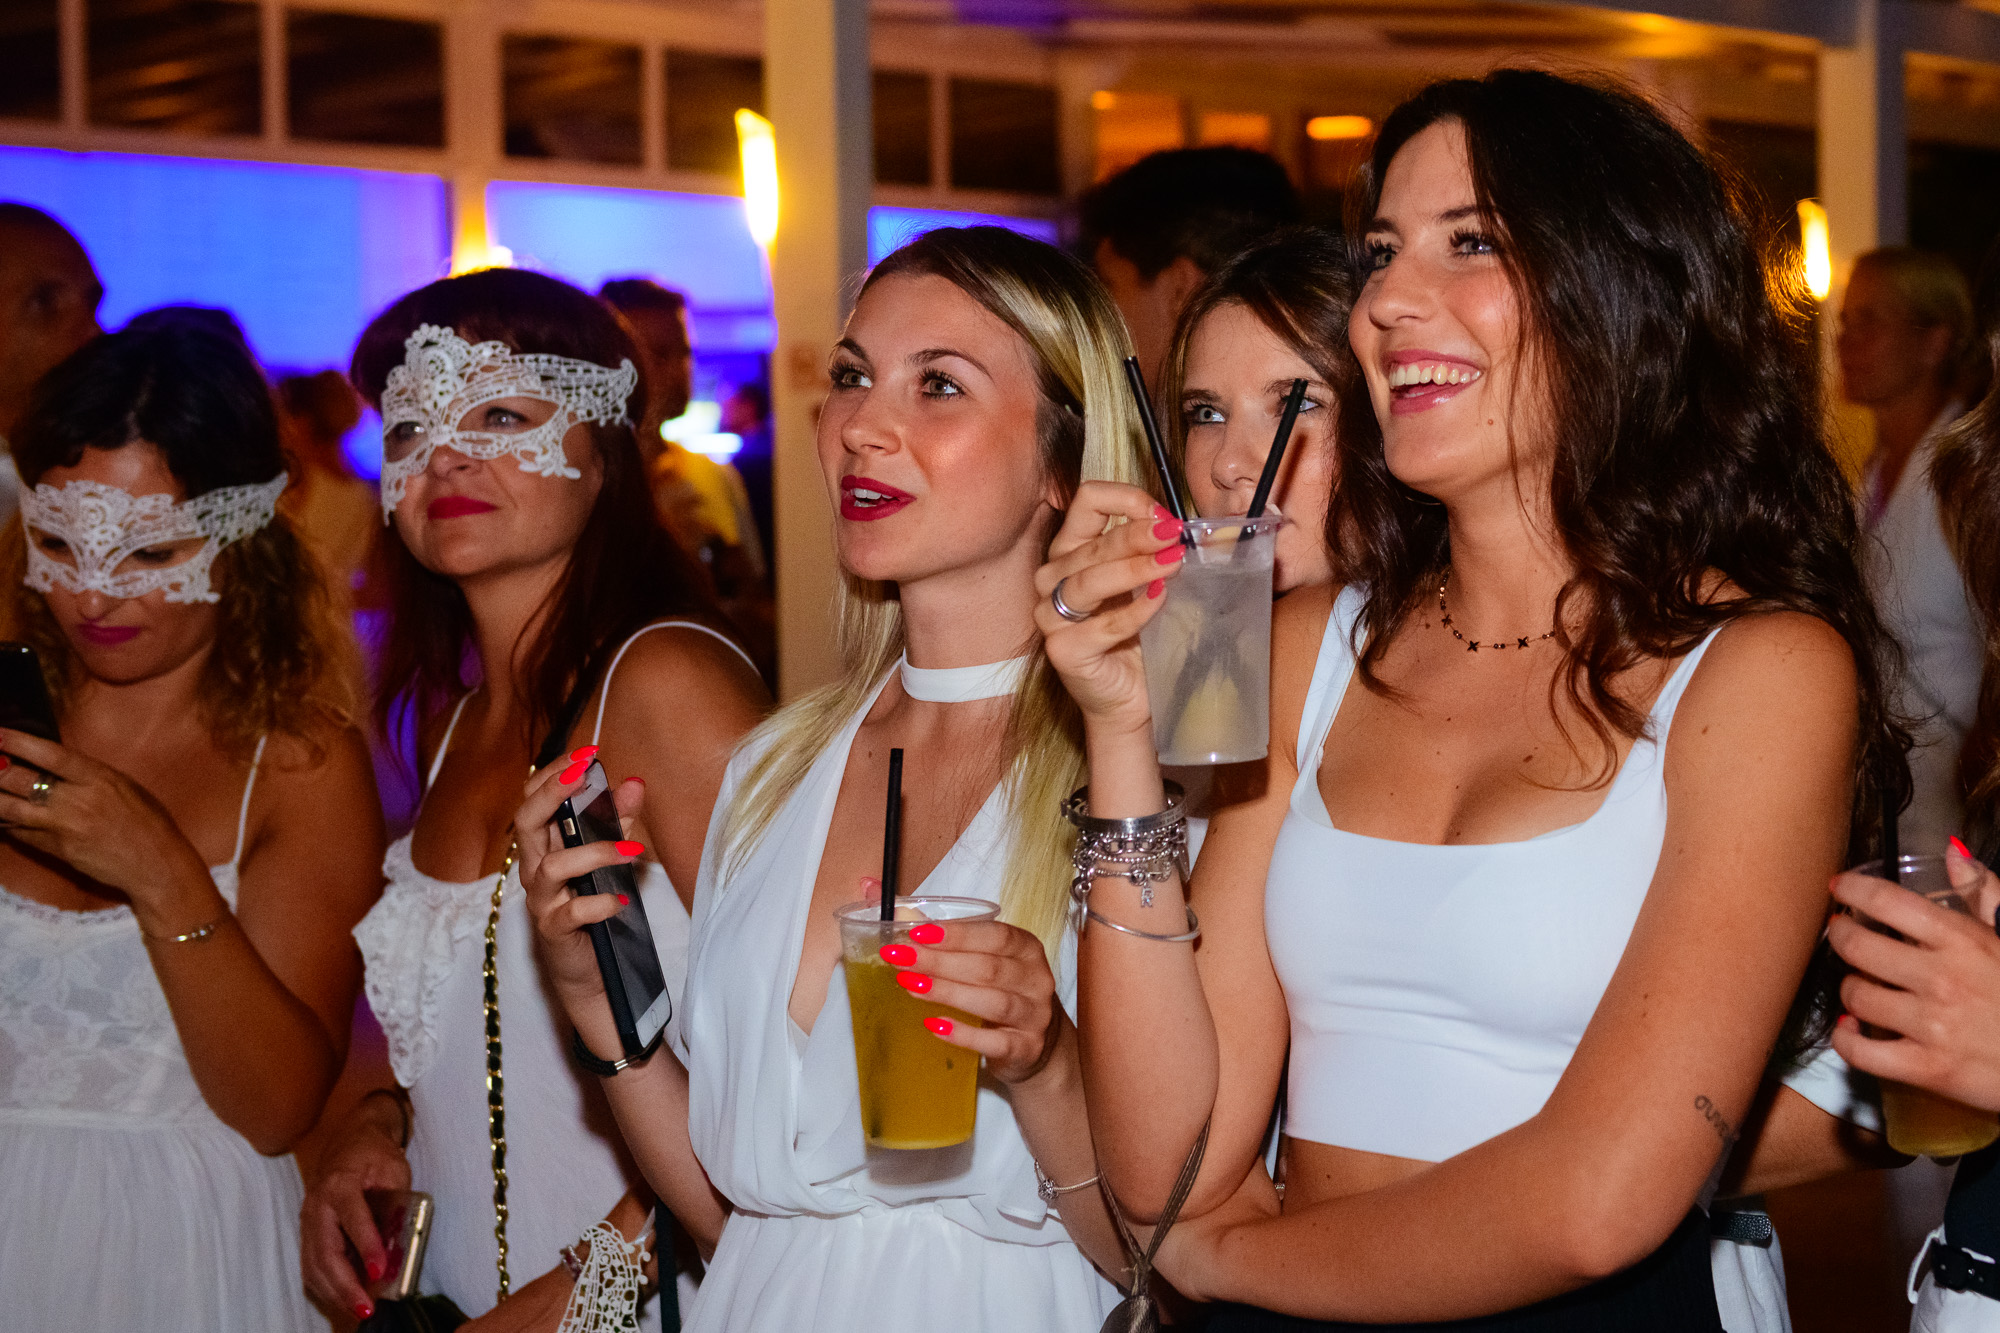 MAGIC WHITE Pool Aperitif by Redbull at Harbour Club | YOUparti